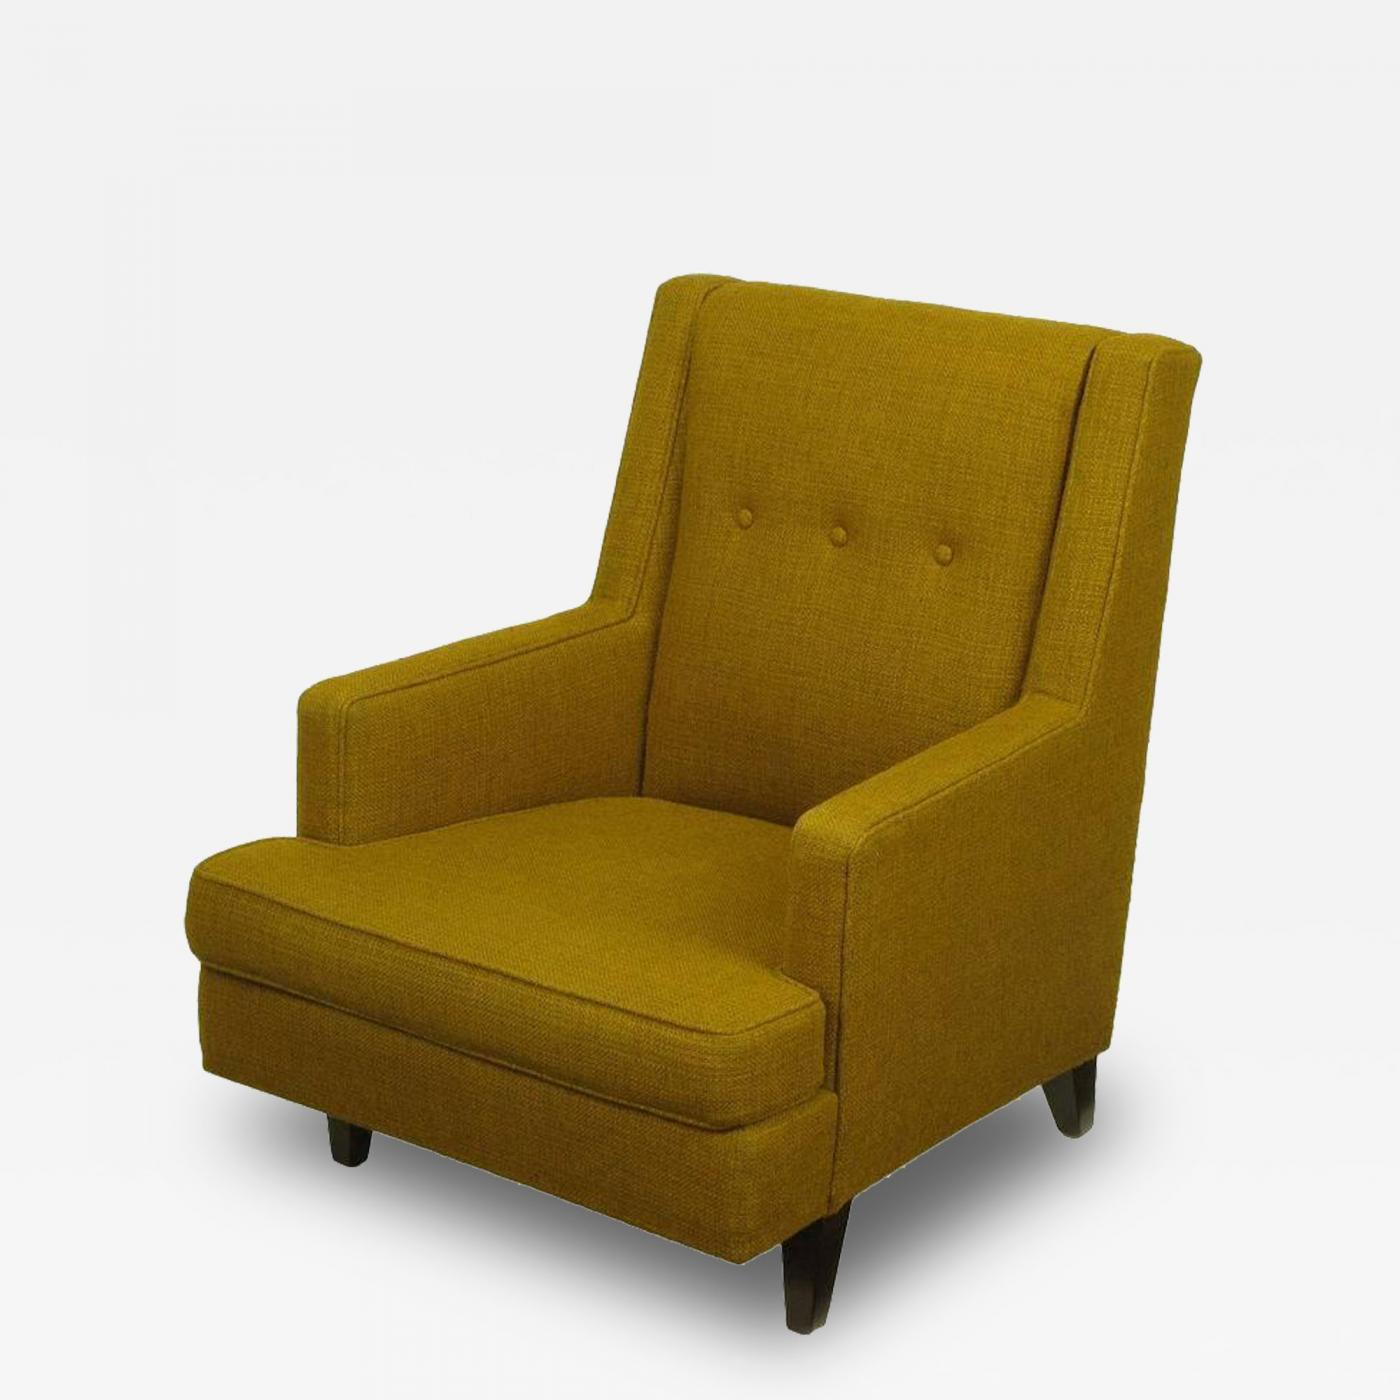 Green Upholstered Chair Edward Wormley Edward Wormley Lounge Chair In Moss Green Wool Upholstery